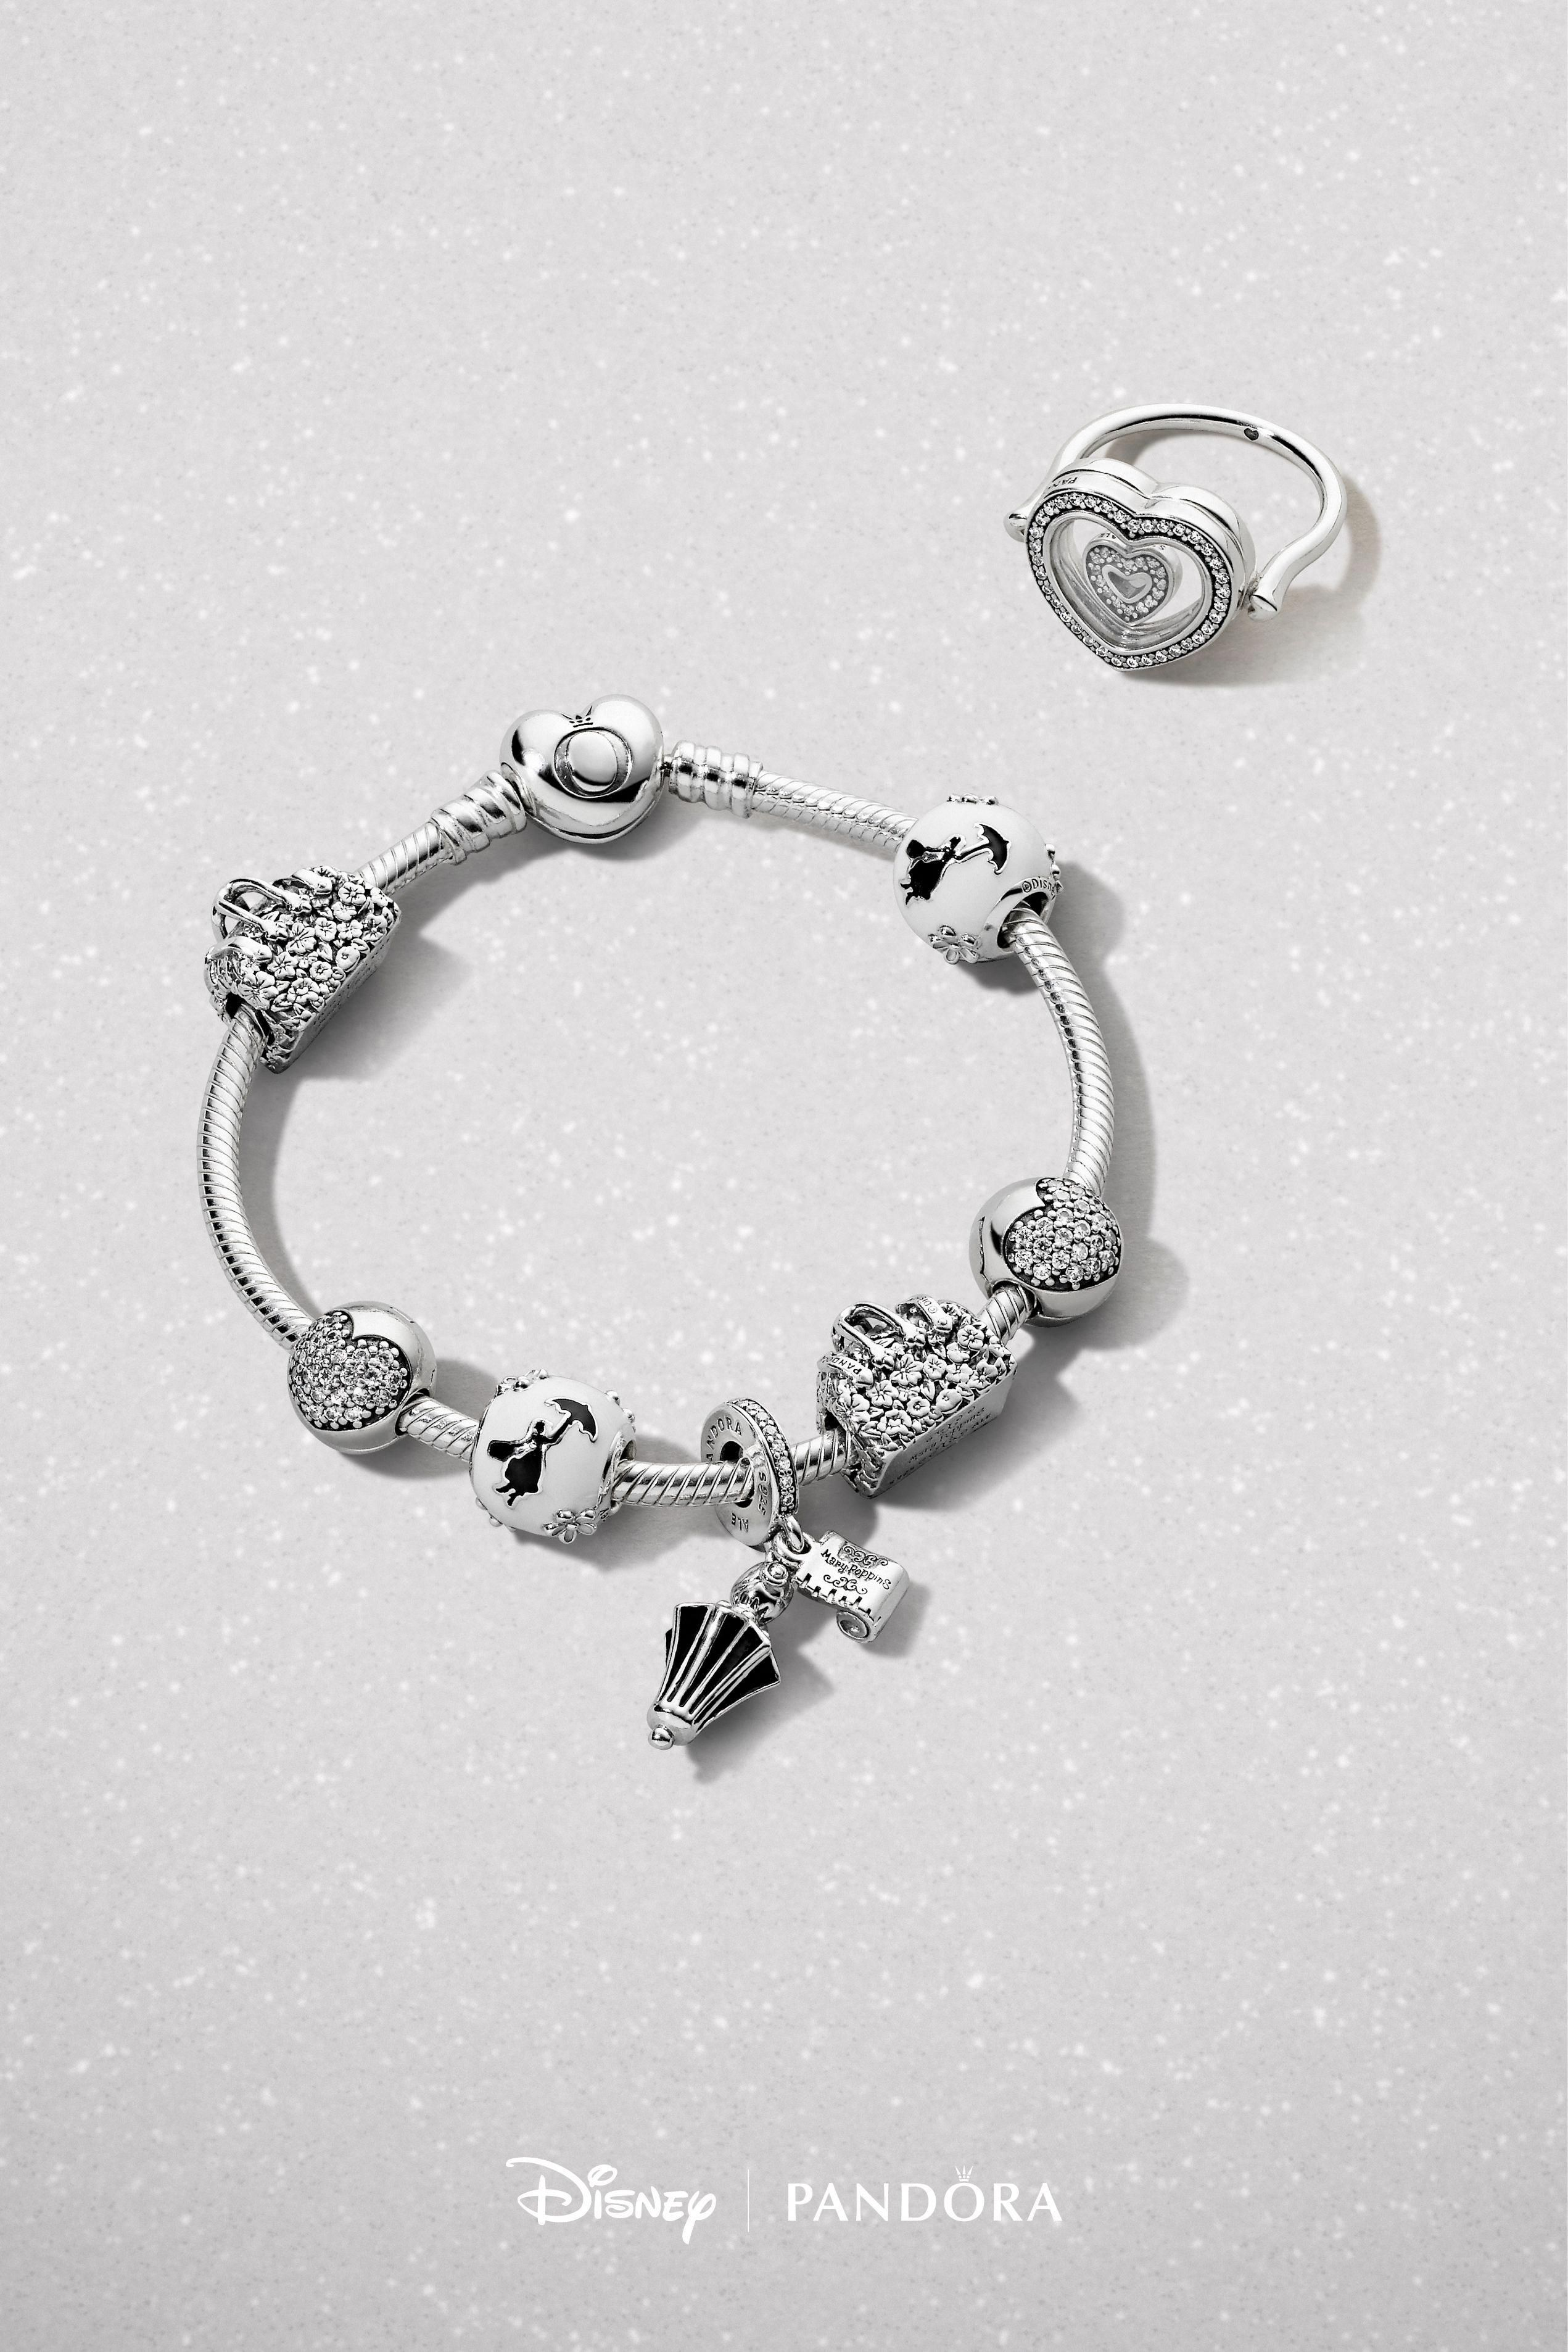 Brighten any rainy day with our new Disney PANDORA charms inspired ...